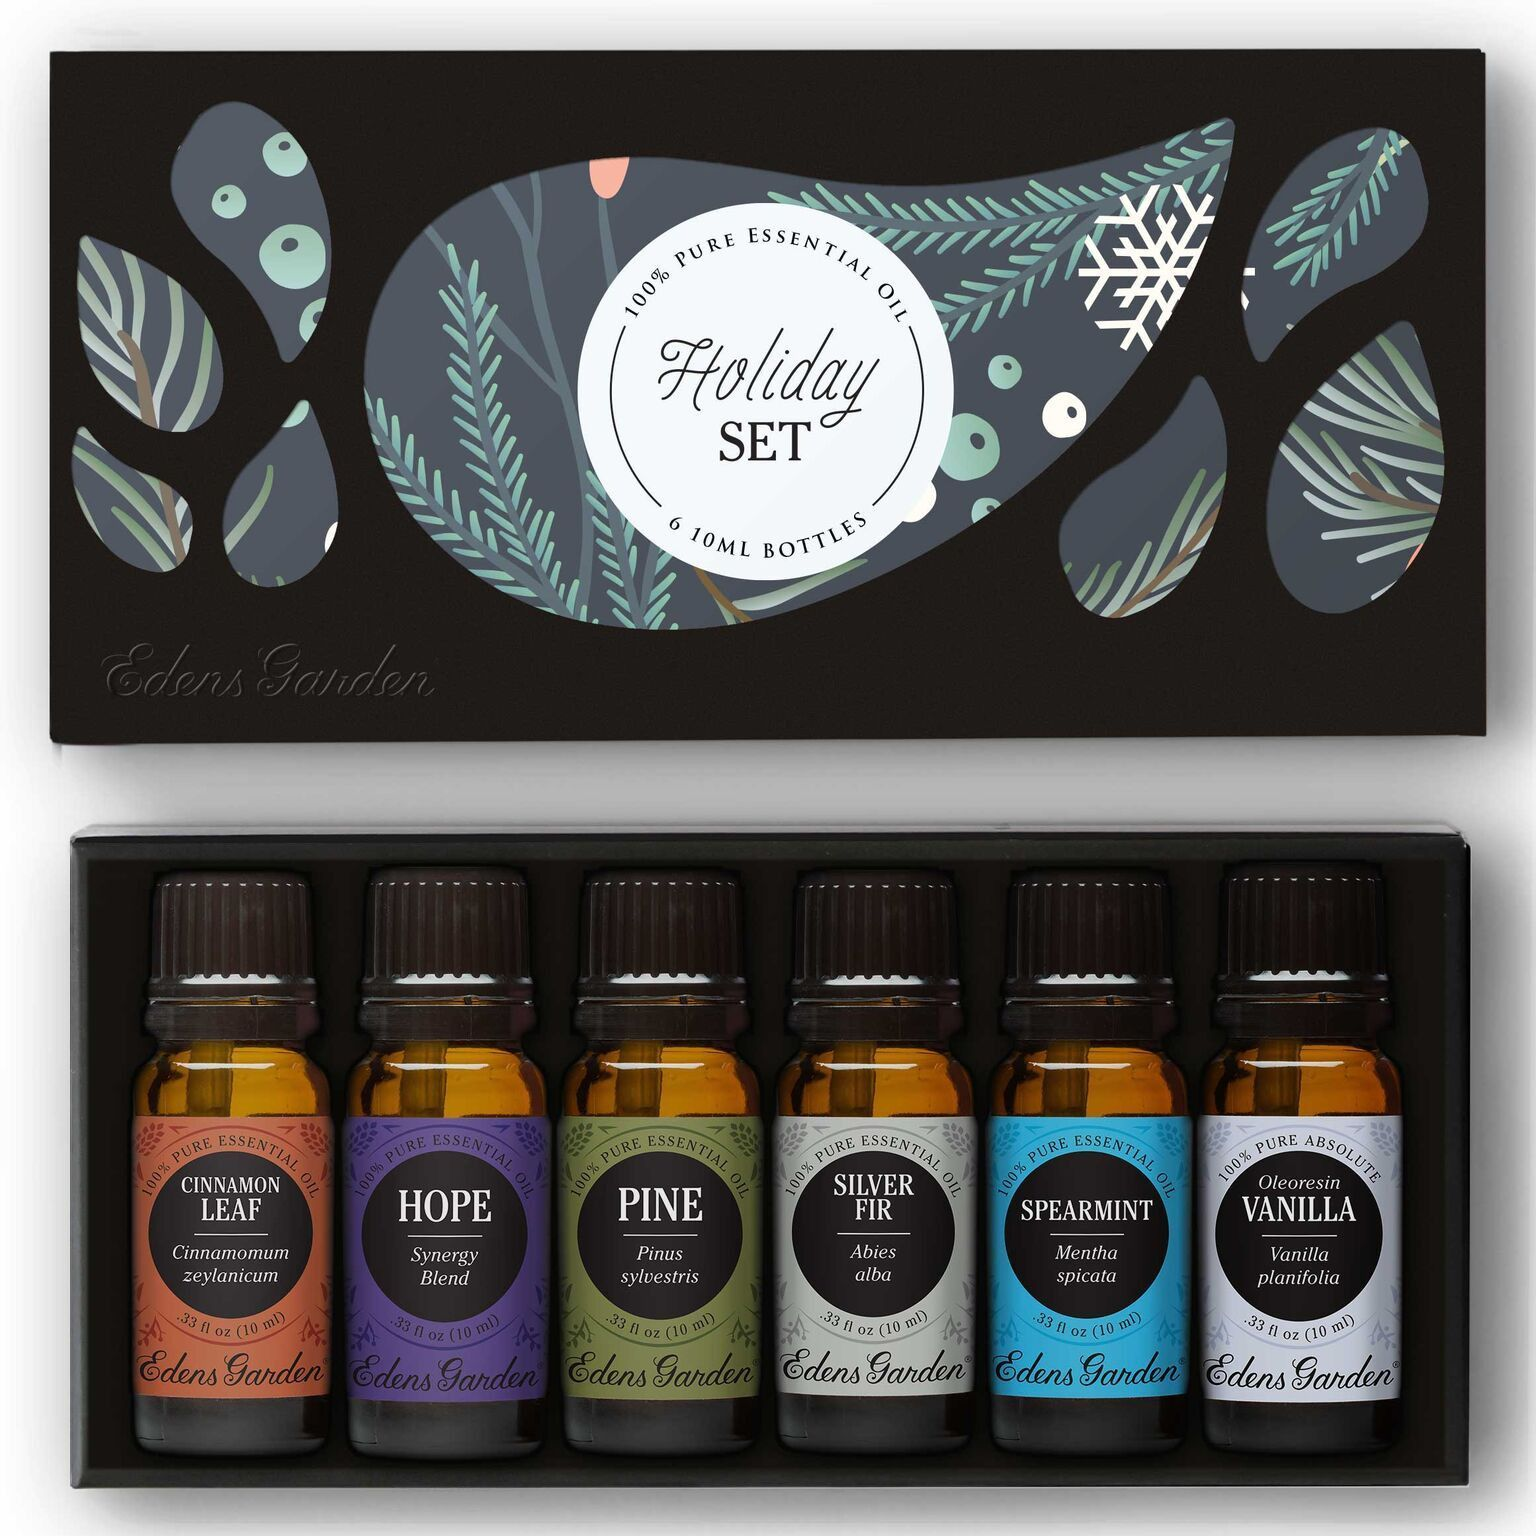 Holiday Set Essential oil gift set